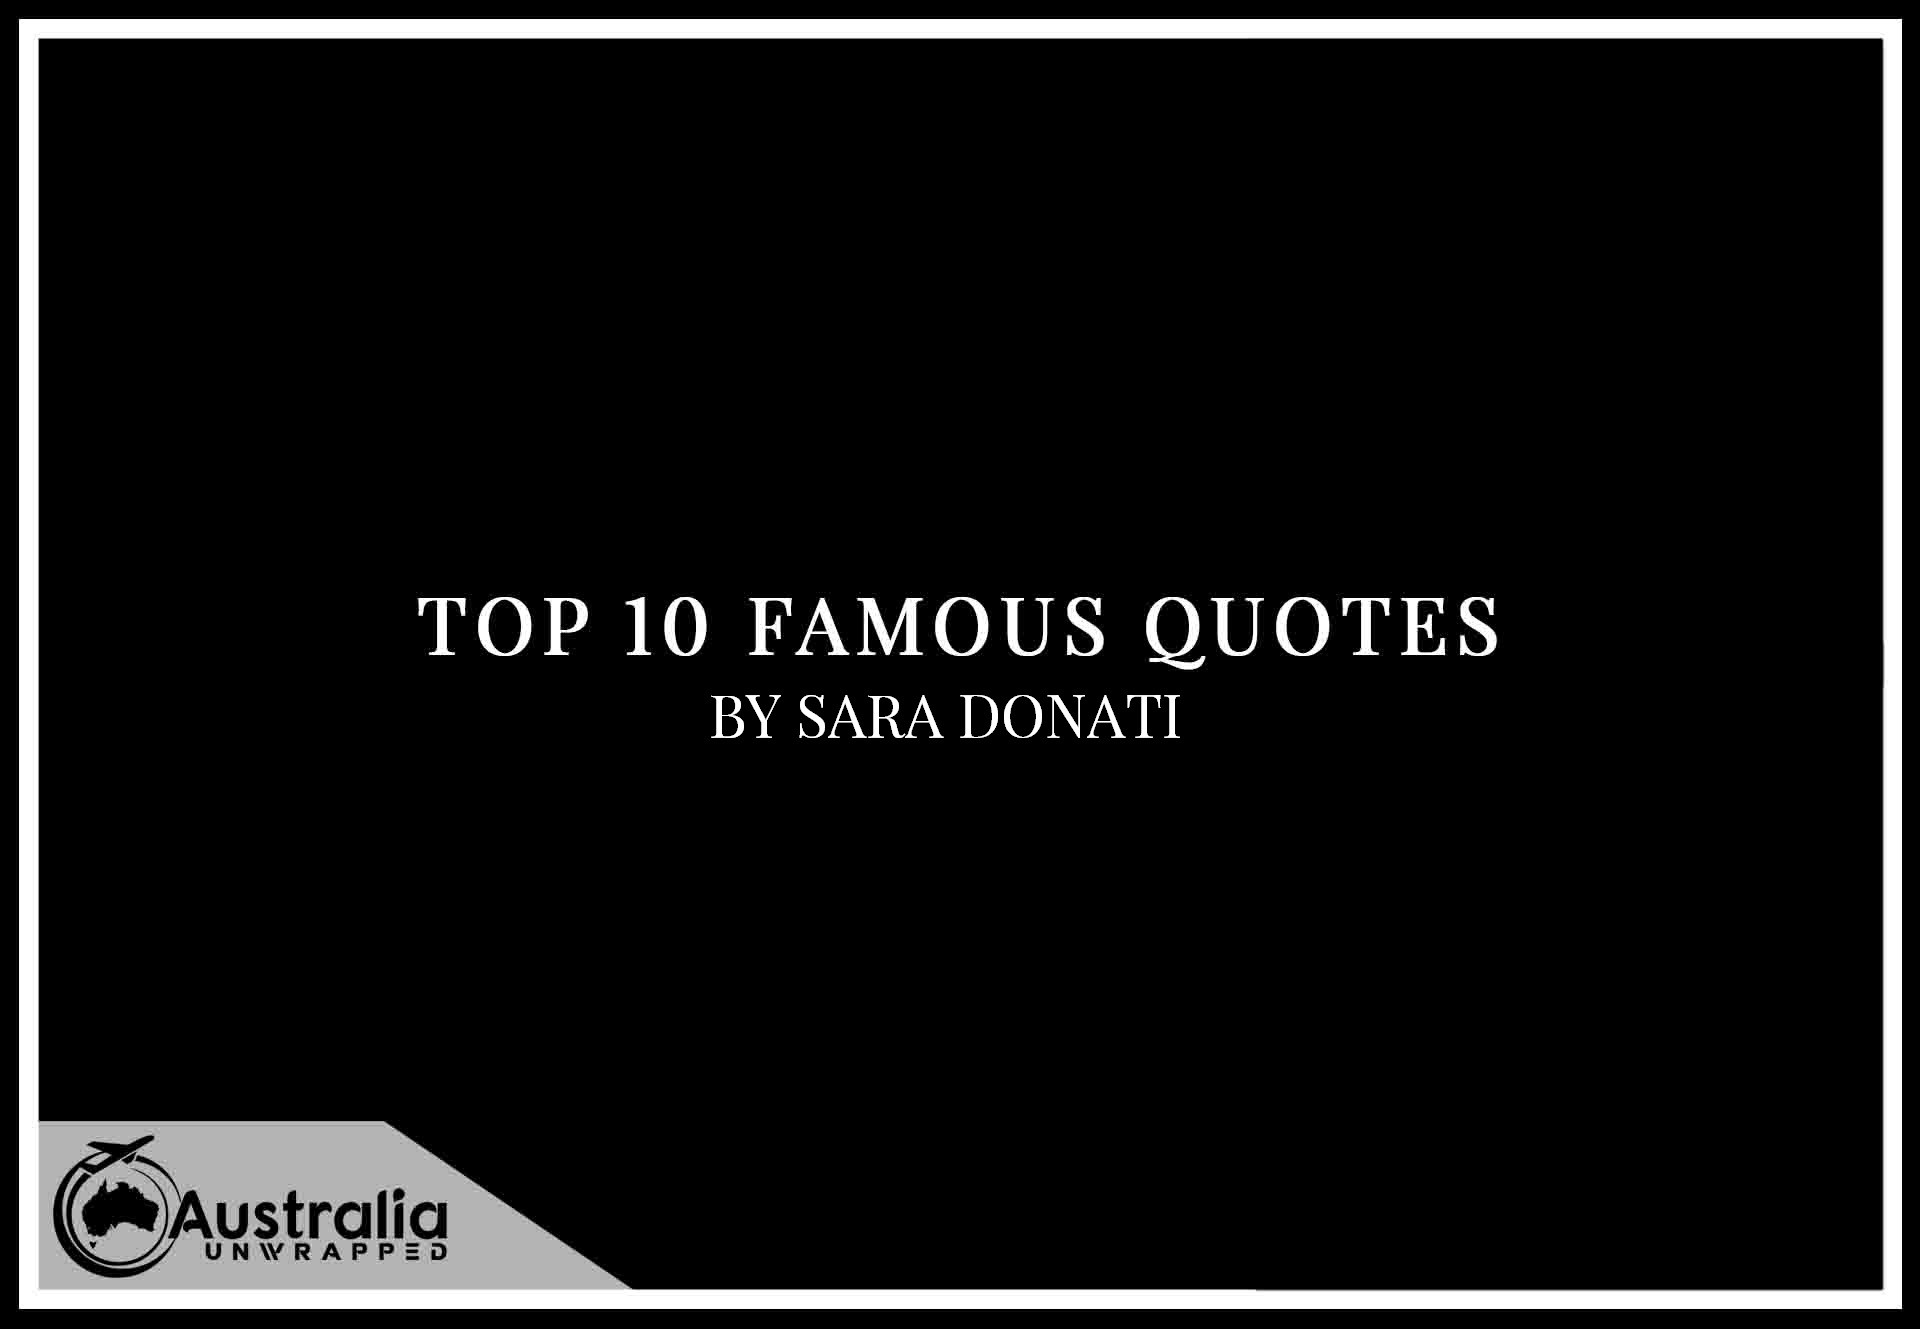 Top 10 Famous Quotes by Author Sara Donati